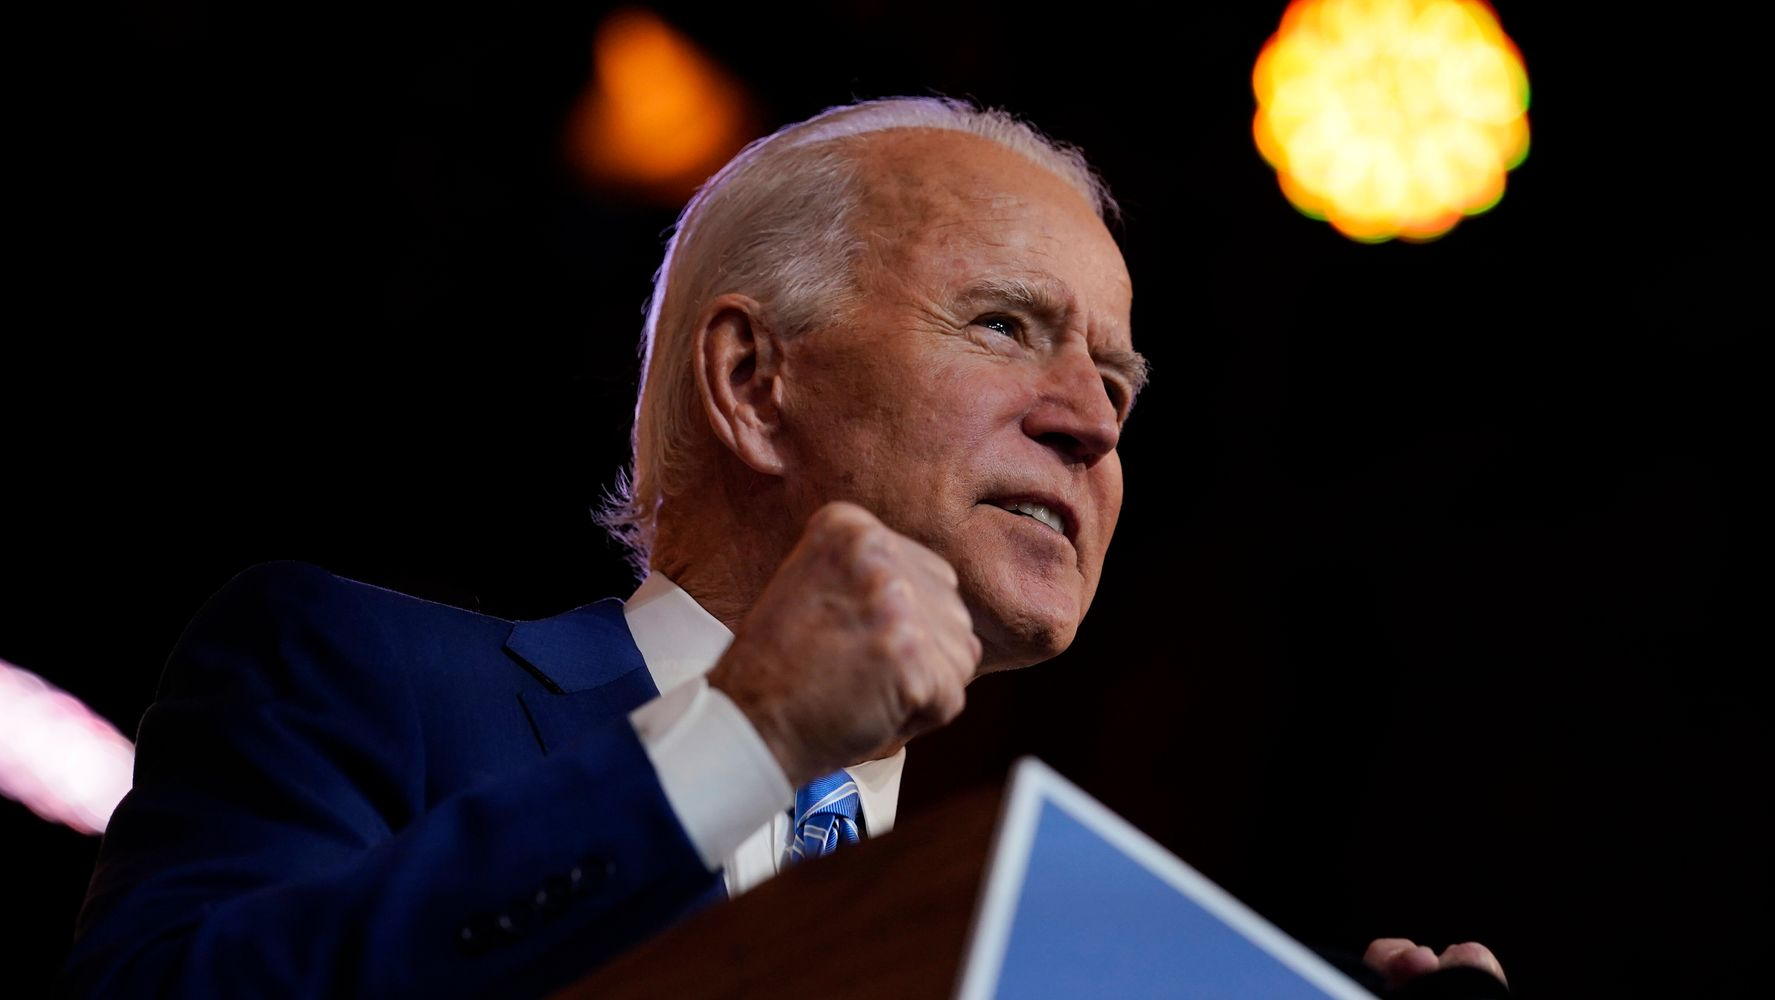 Wisconsin Counties Finish Recounts, Biden's Lead Reconfirmed